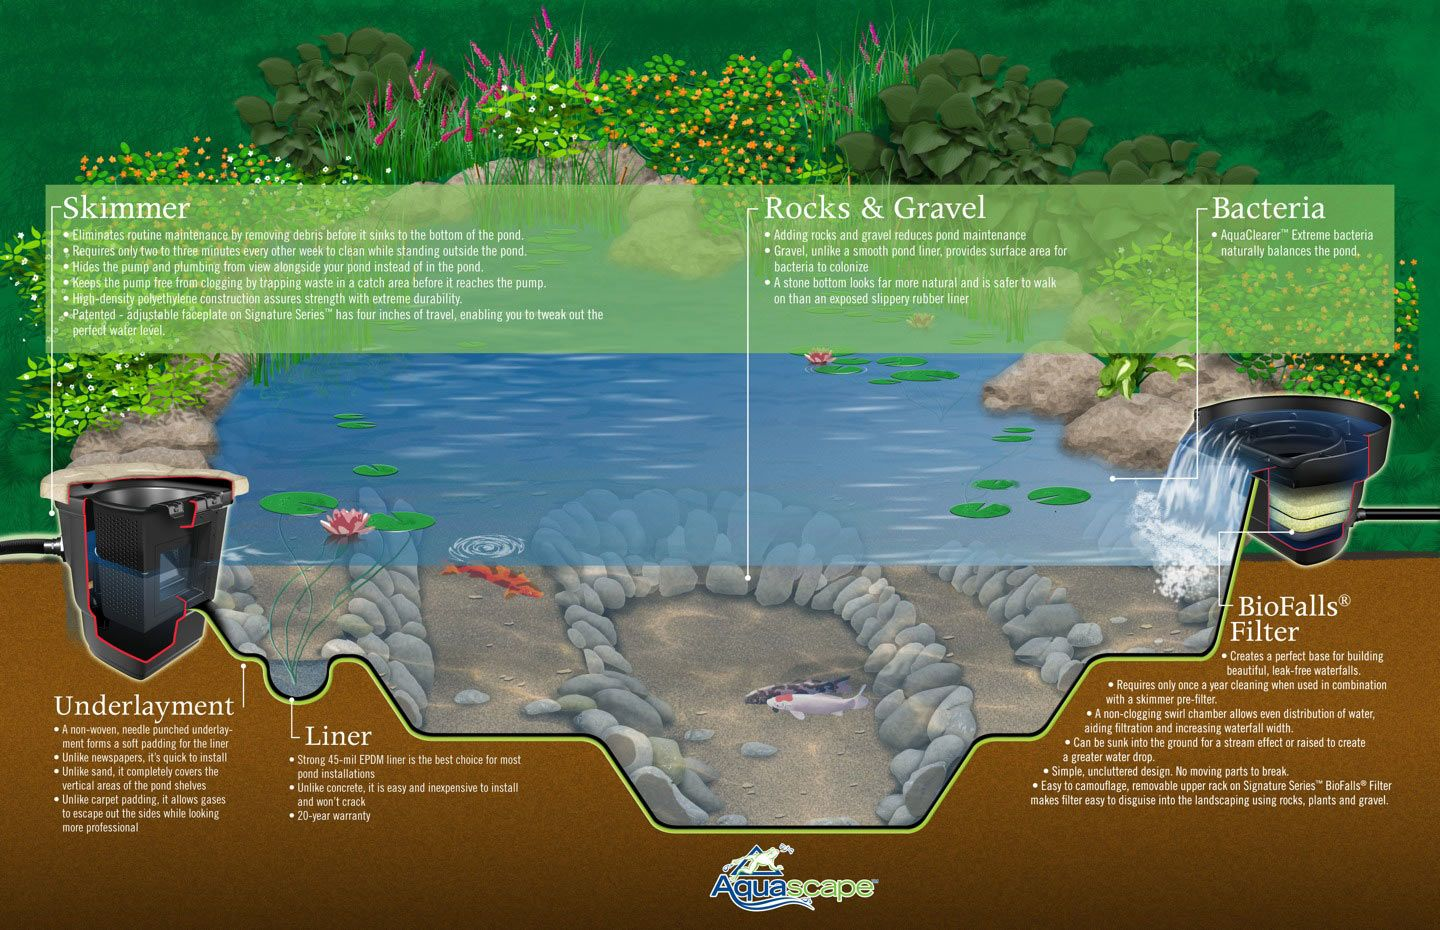 1000 images about pond on pinterest koi ponds ponds and koi garden ponds design ideas - Garden Ponds Design Ideas